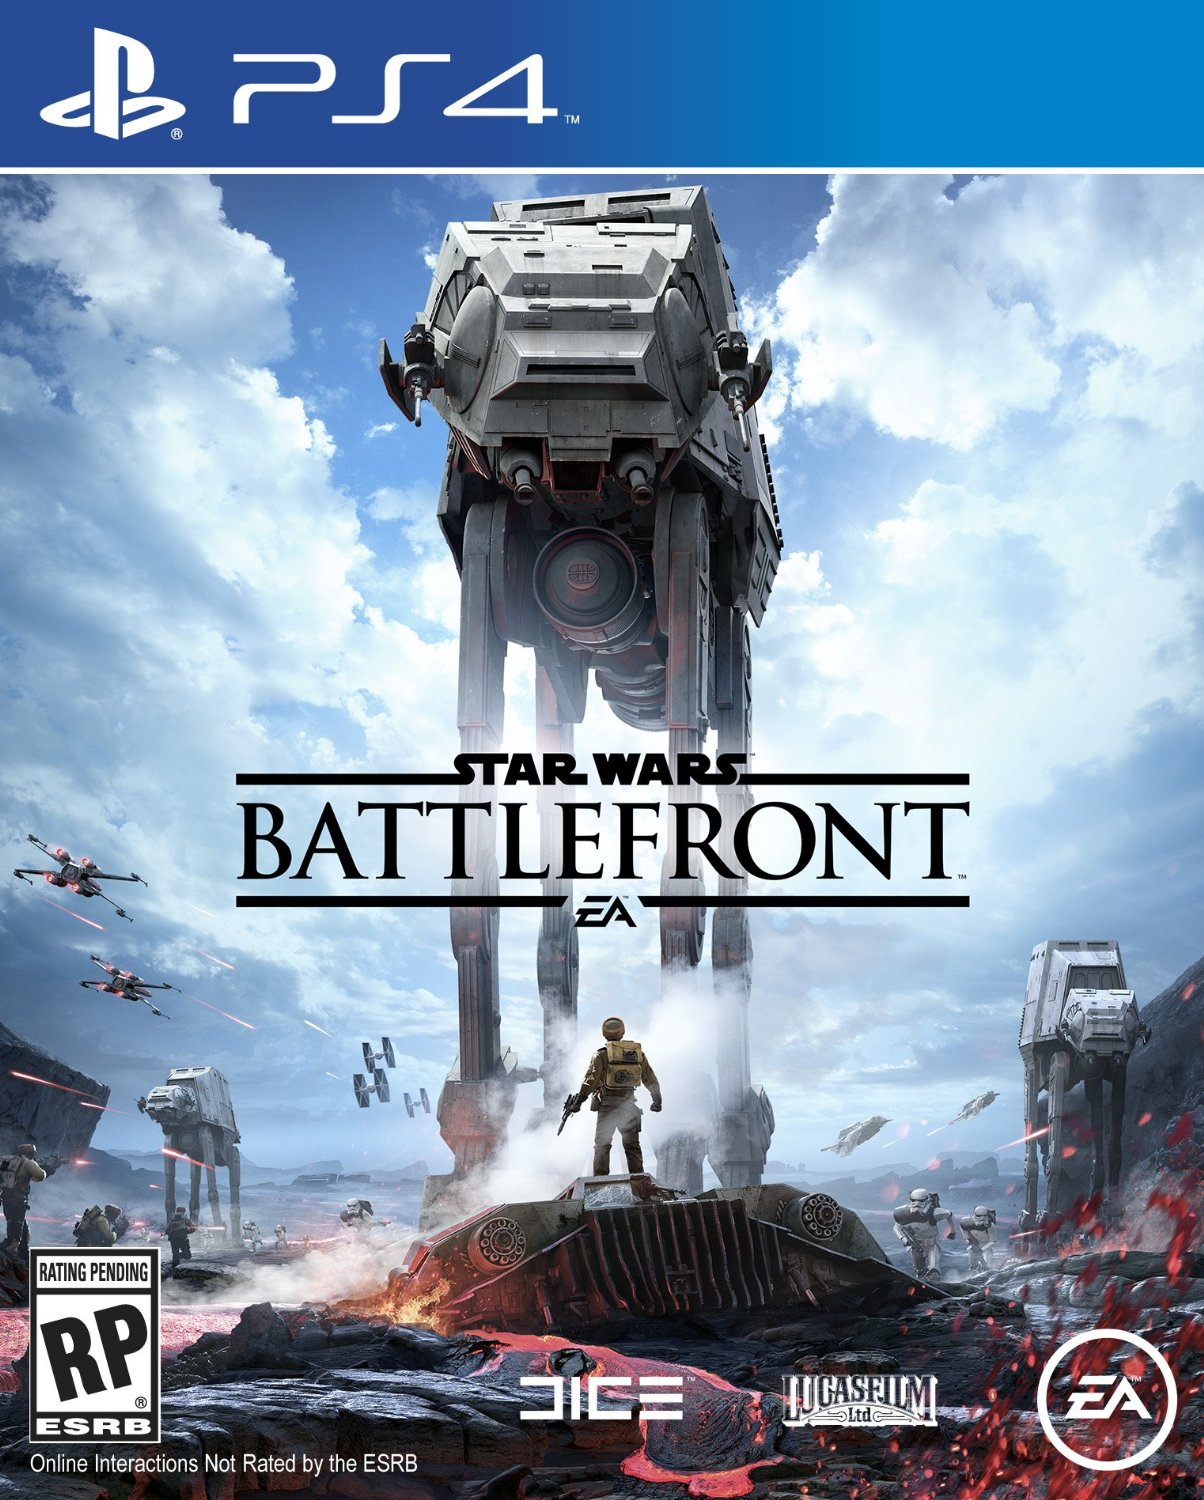 PS4 Star Wars Battlefront em Portugues e Espanol (PlayStation 4)